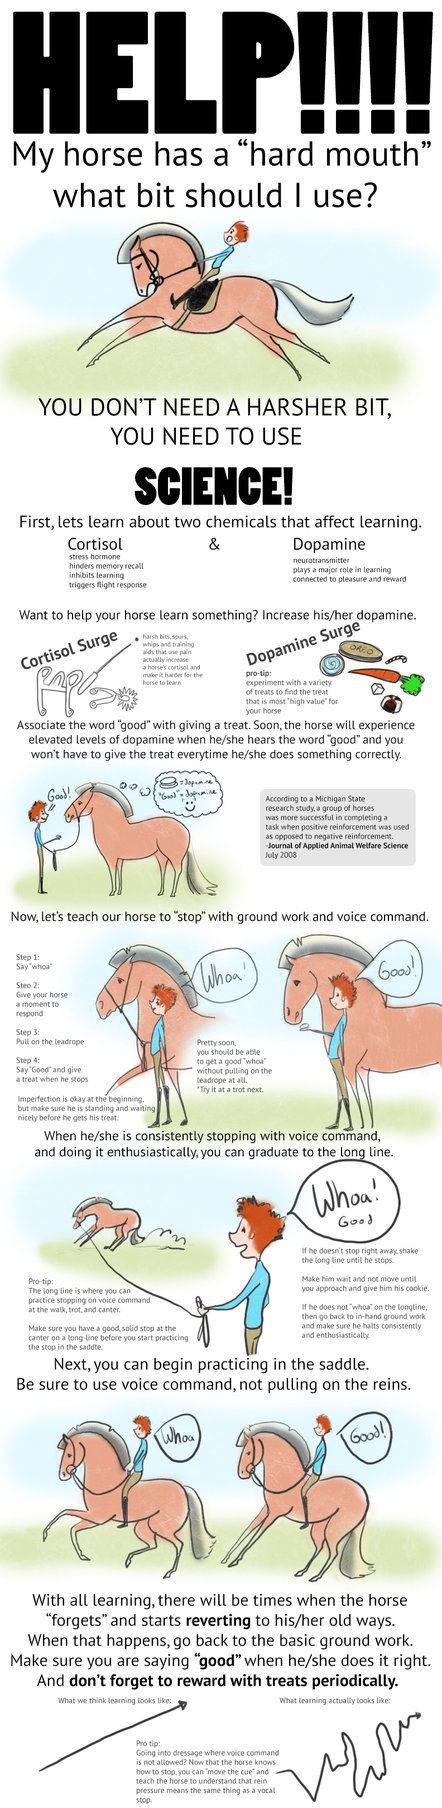 I've been getting annoyed by all the posts on facebook horse groups from people who say they can't stop their horse, their horse is too strong, and wanting to know what kind of bit they should use....